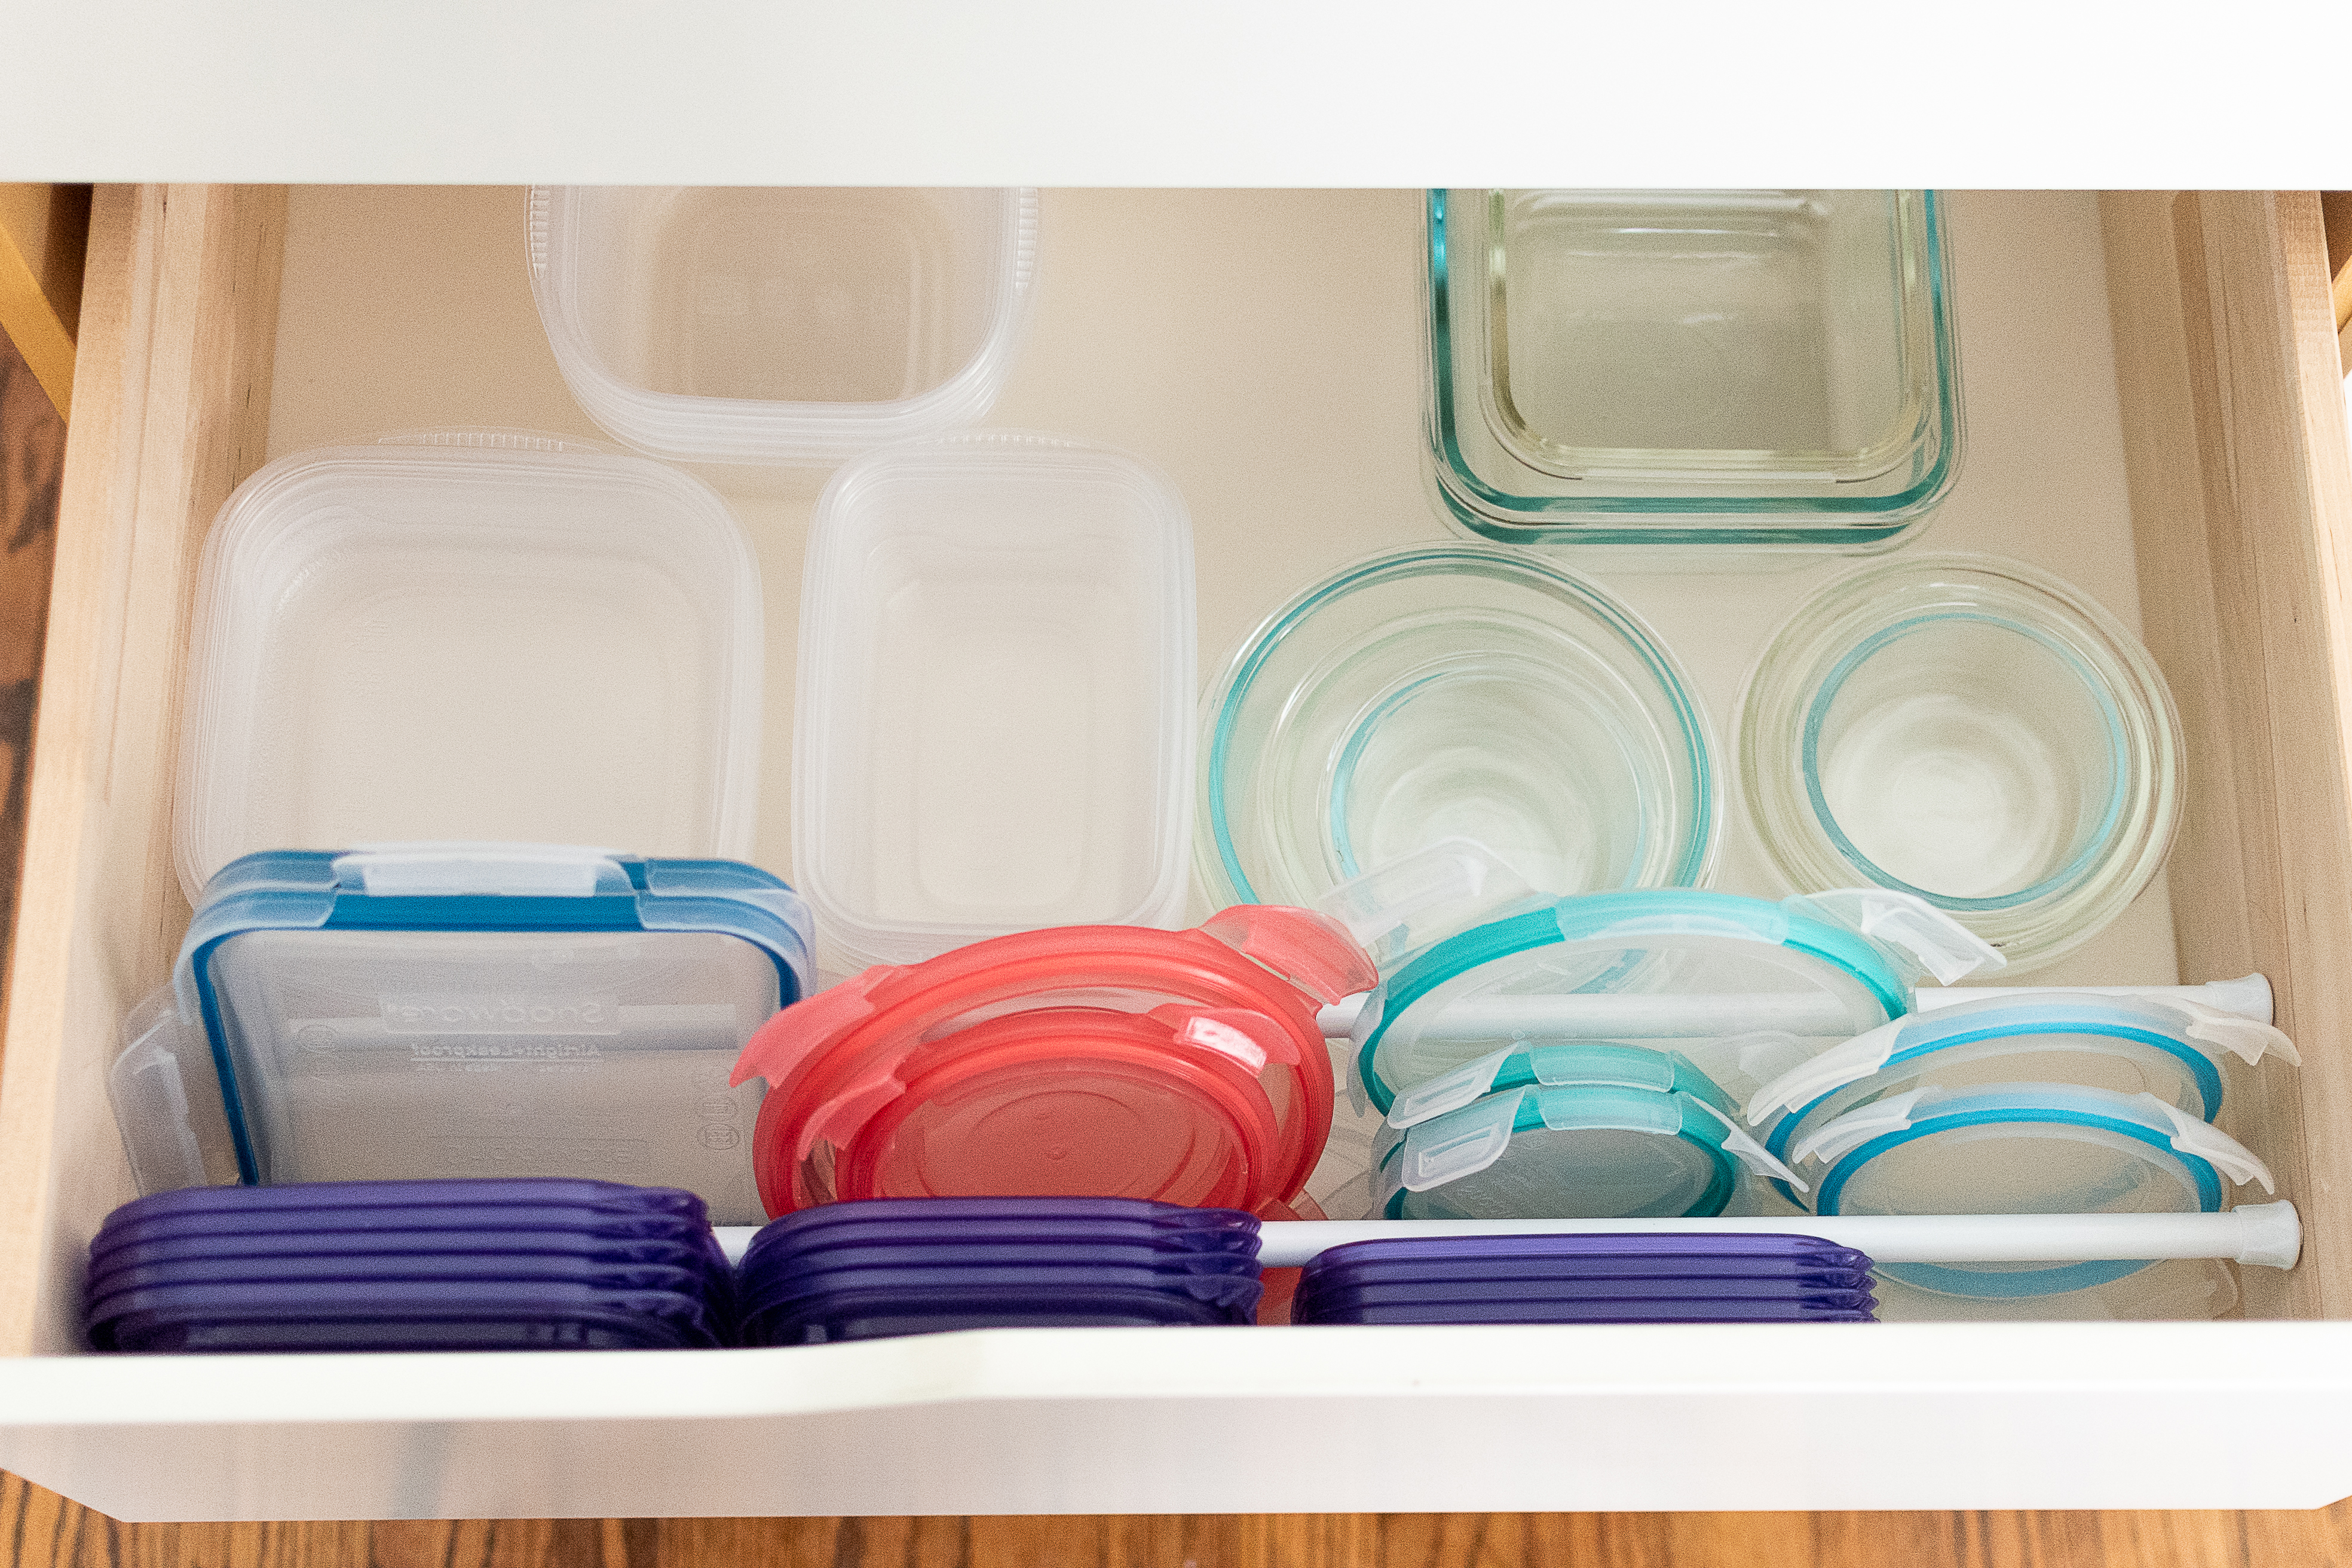 10 Clever Ways To Organize Tupperware And Food Storage Containers